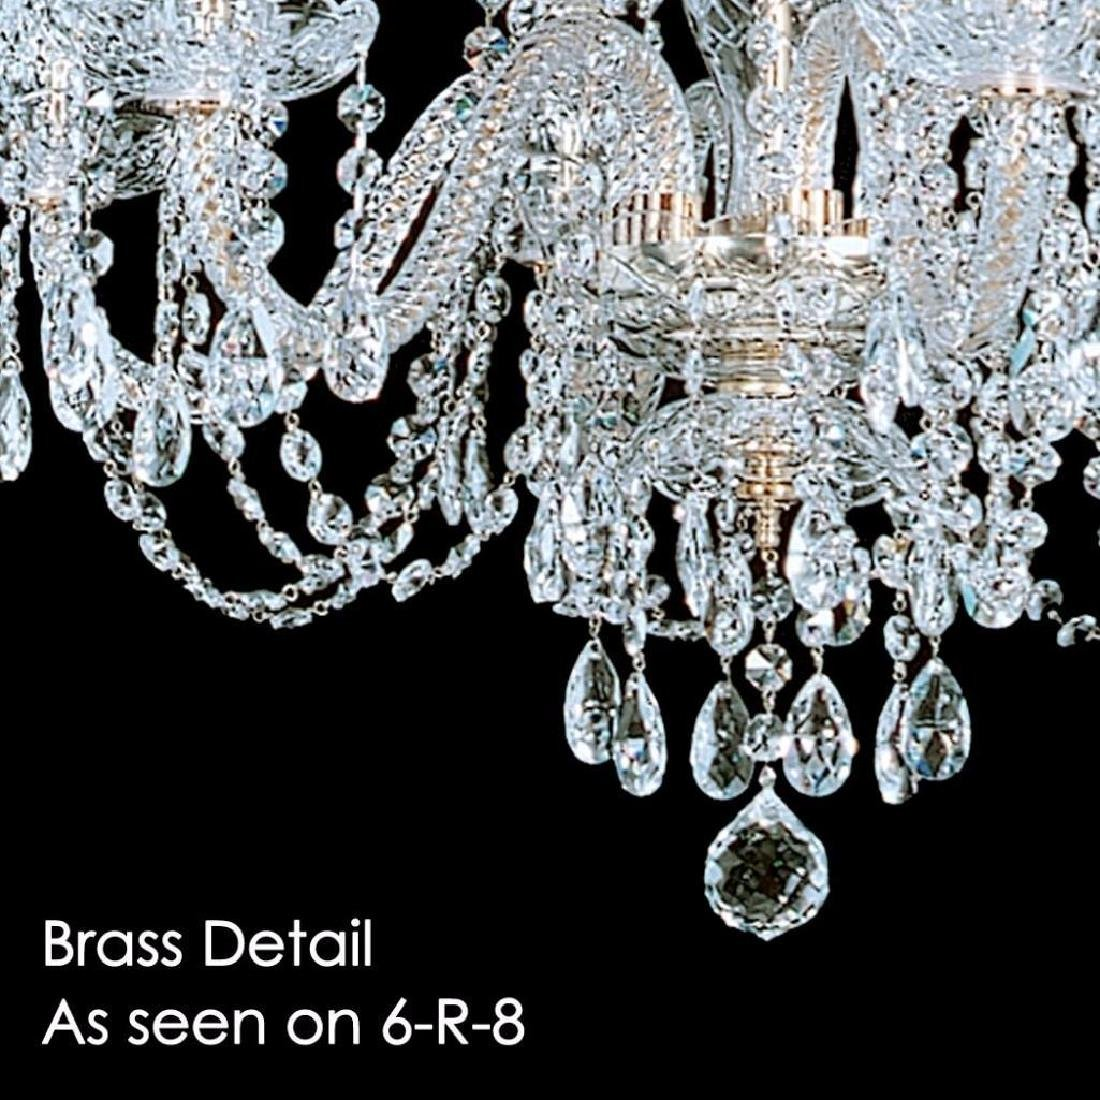 Winter Elegance - 16 Light Crystal Chandelier with - 4